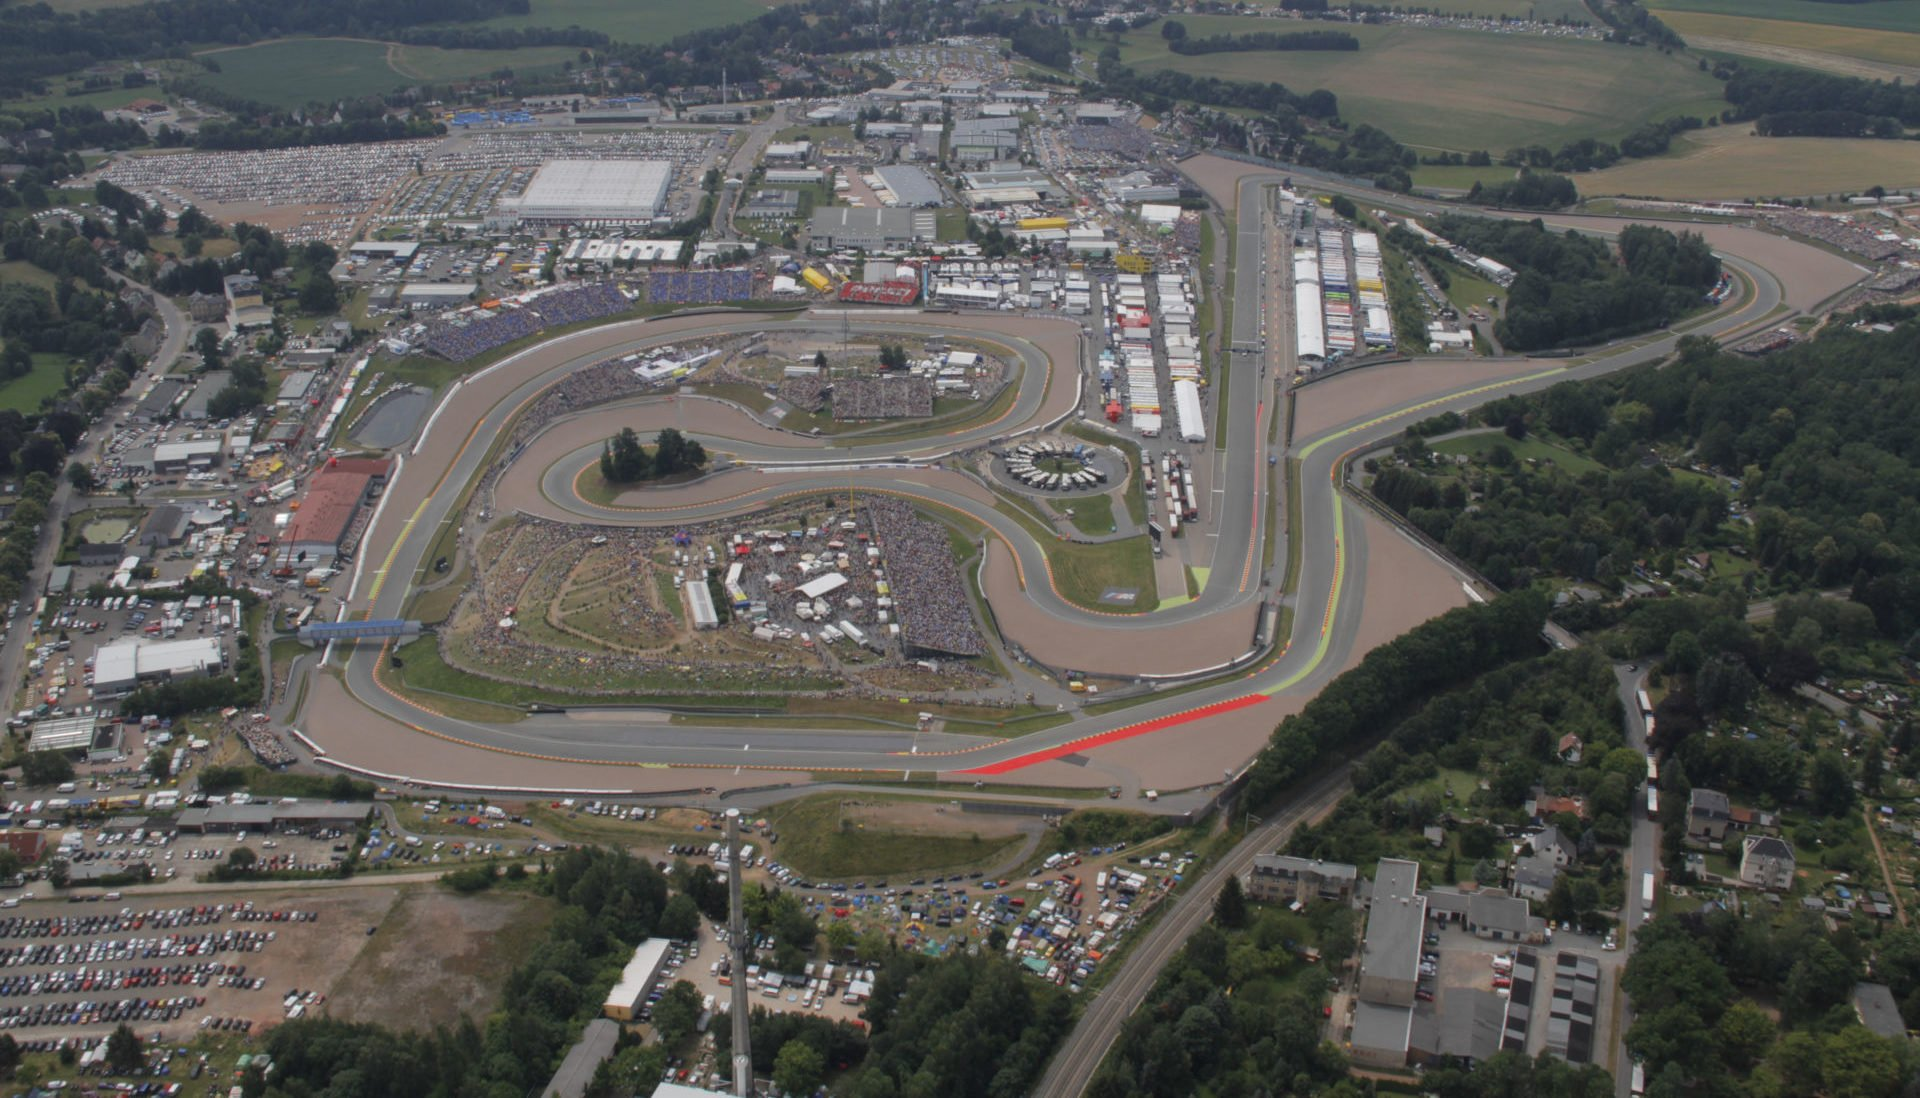 """Featured image for """"Moto 2: Sachsenring To Host the 200th Moto 2 race"""""""